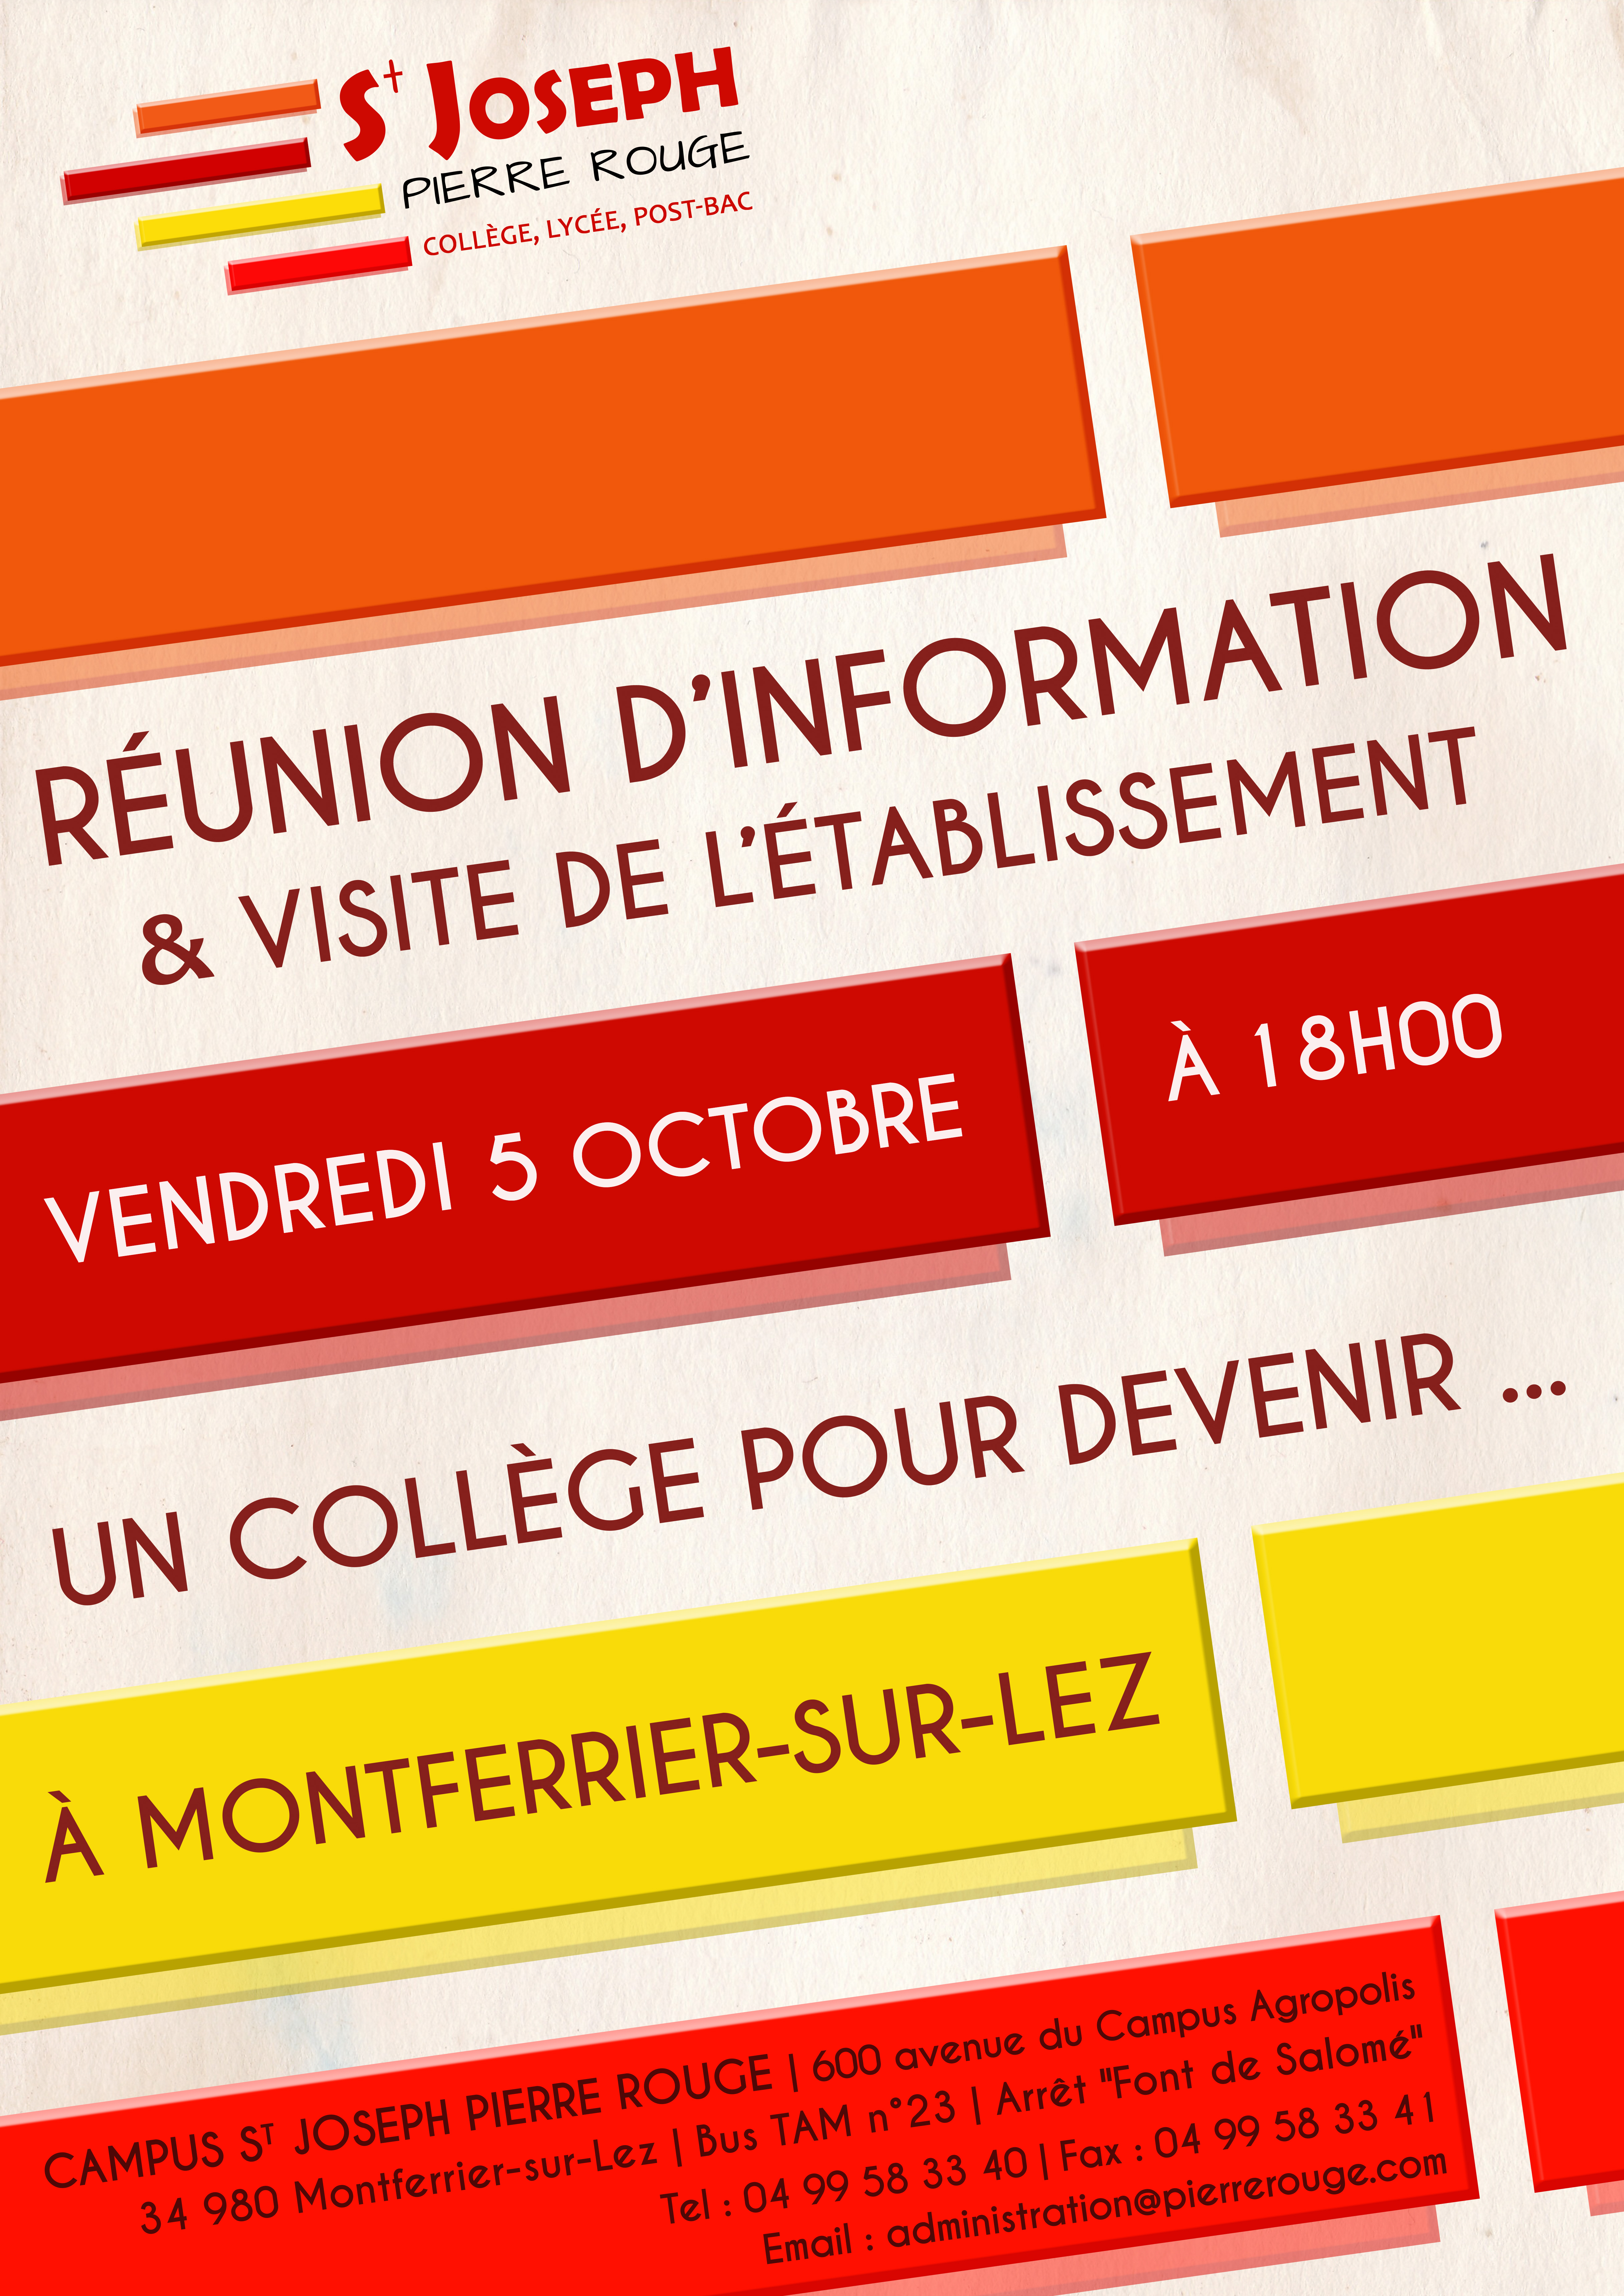 Affiche Runion dinformation rentre V4 2018 2